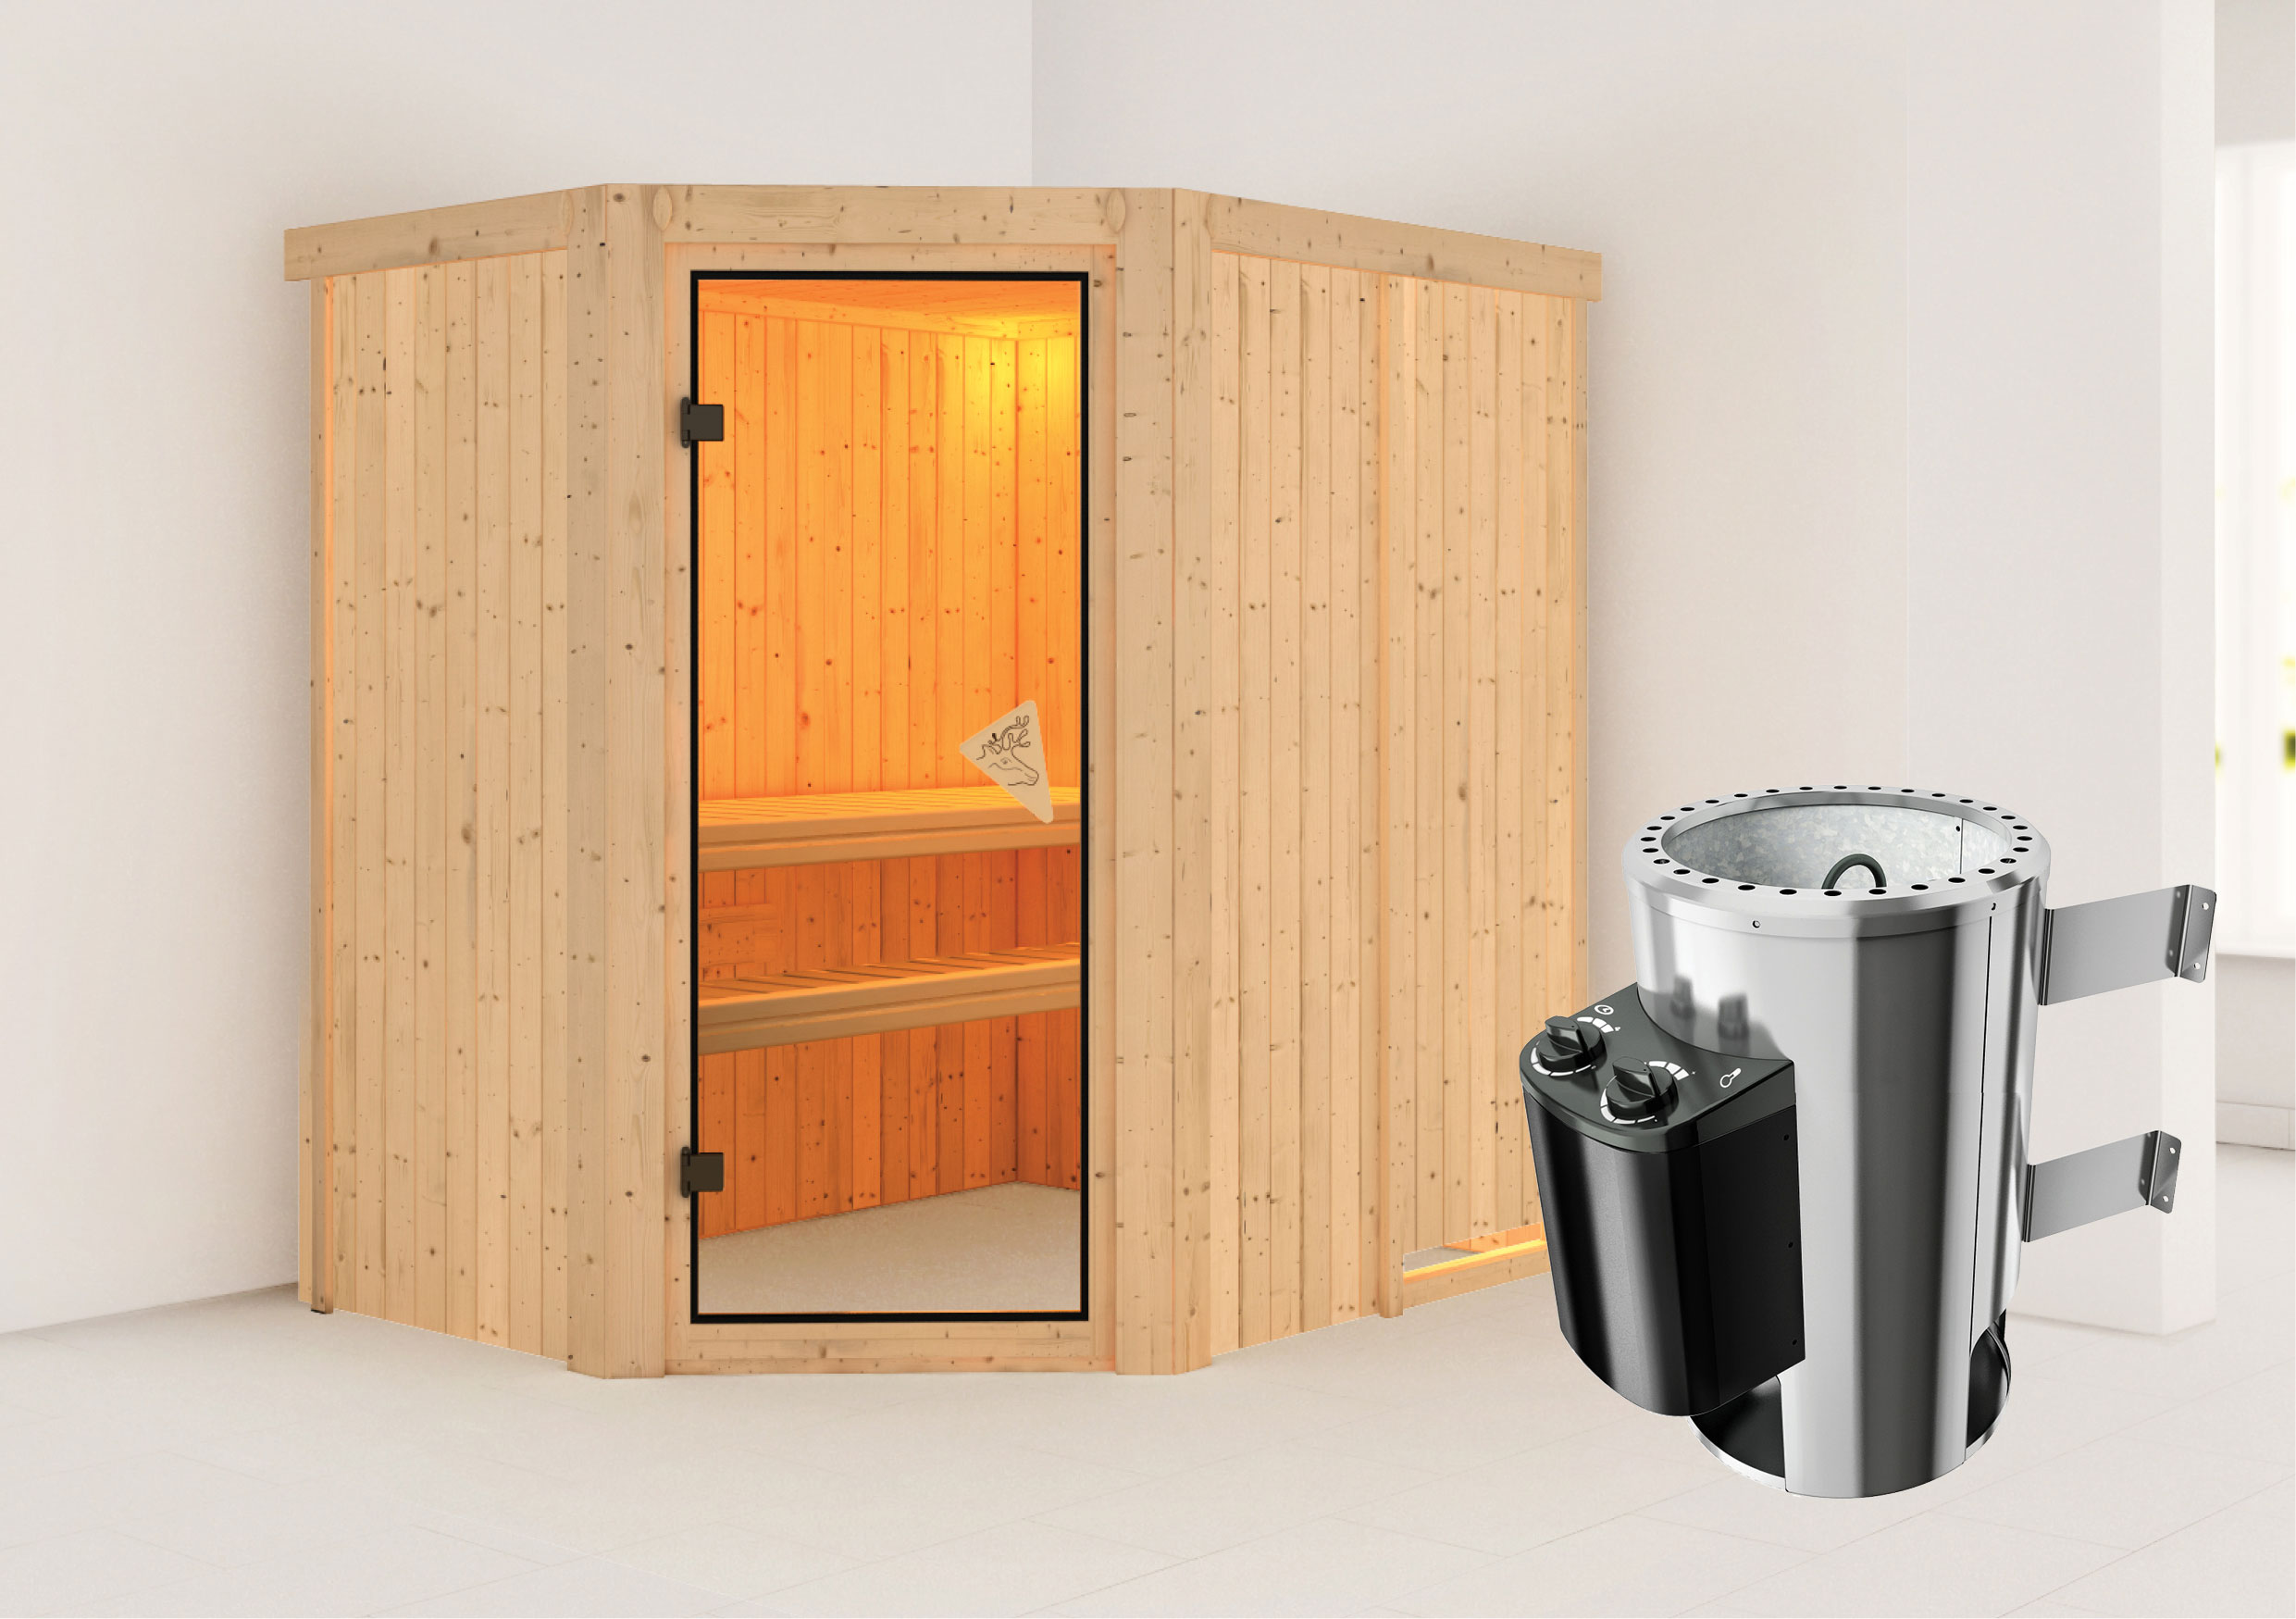 karibu sauna saja 68mm 230v mit ofen 3 6kw intern classic t r bei. Black Bedroom Furniture Sets. Home Design Ideas